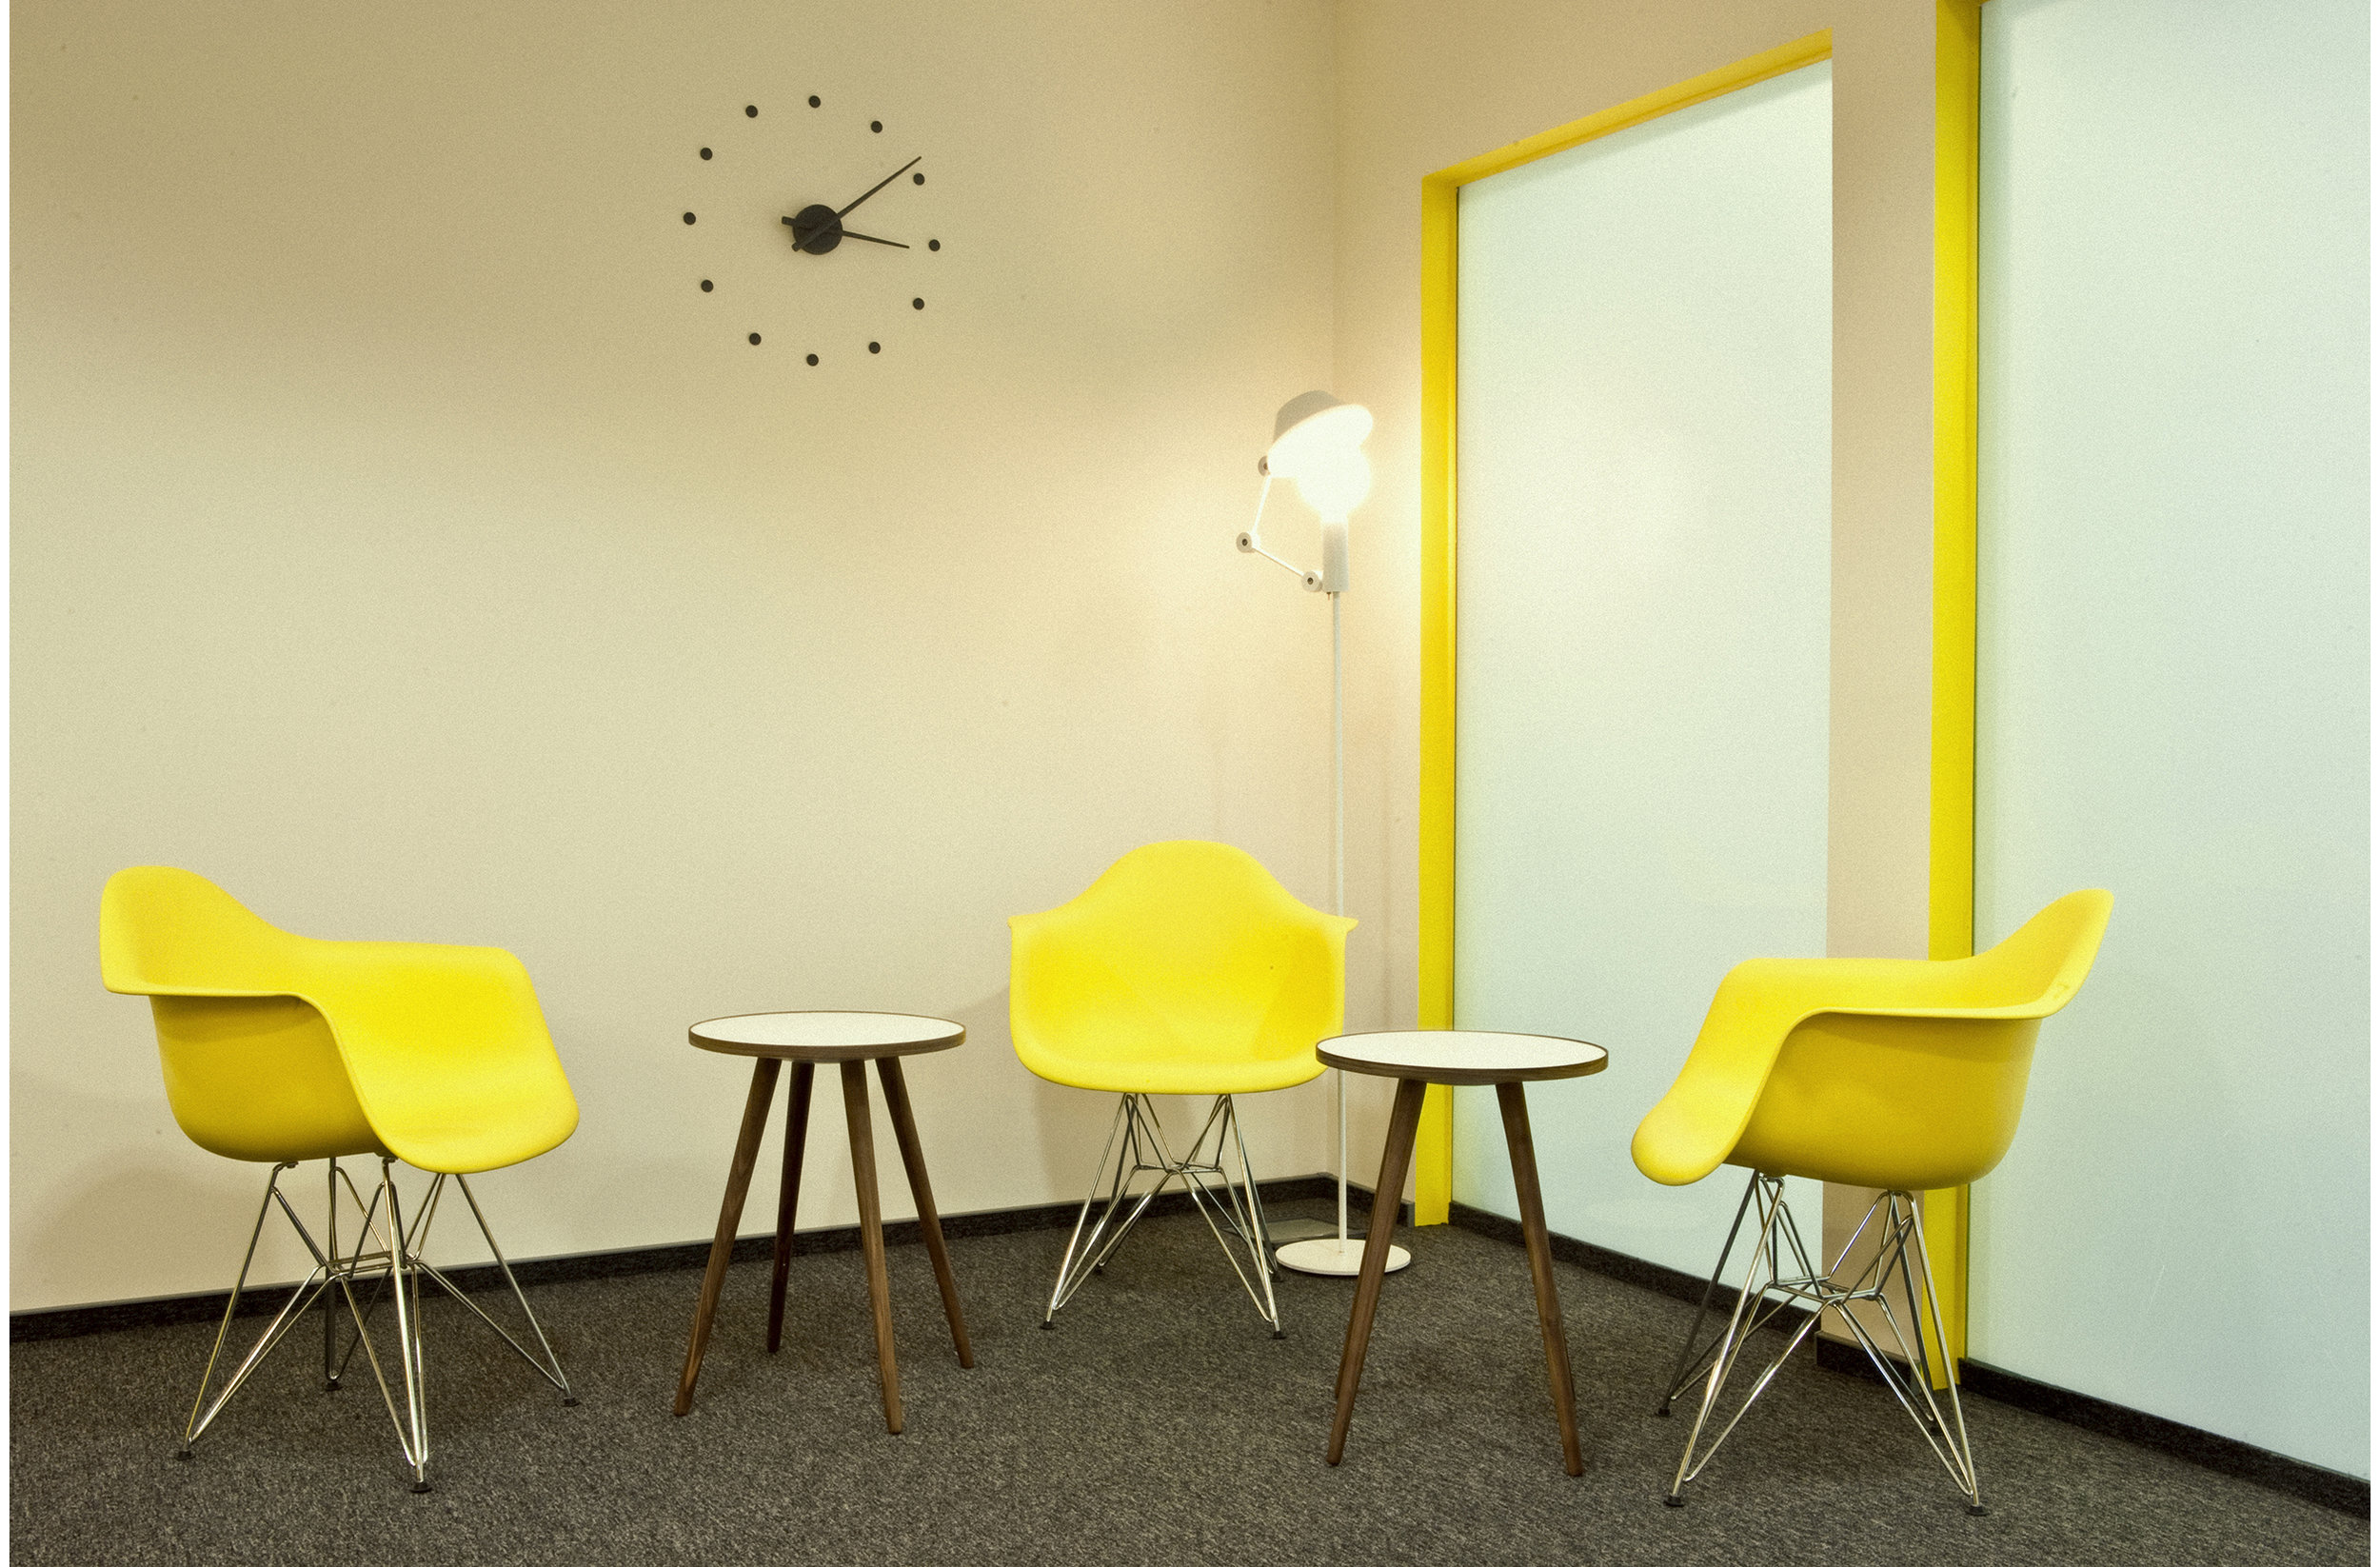 Small conference room interior